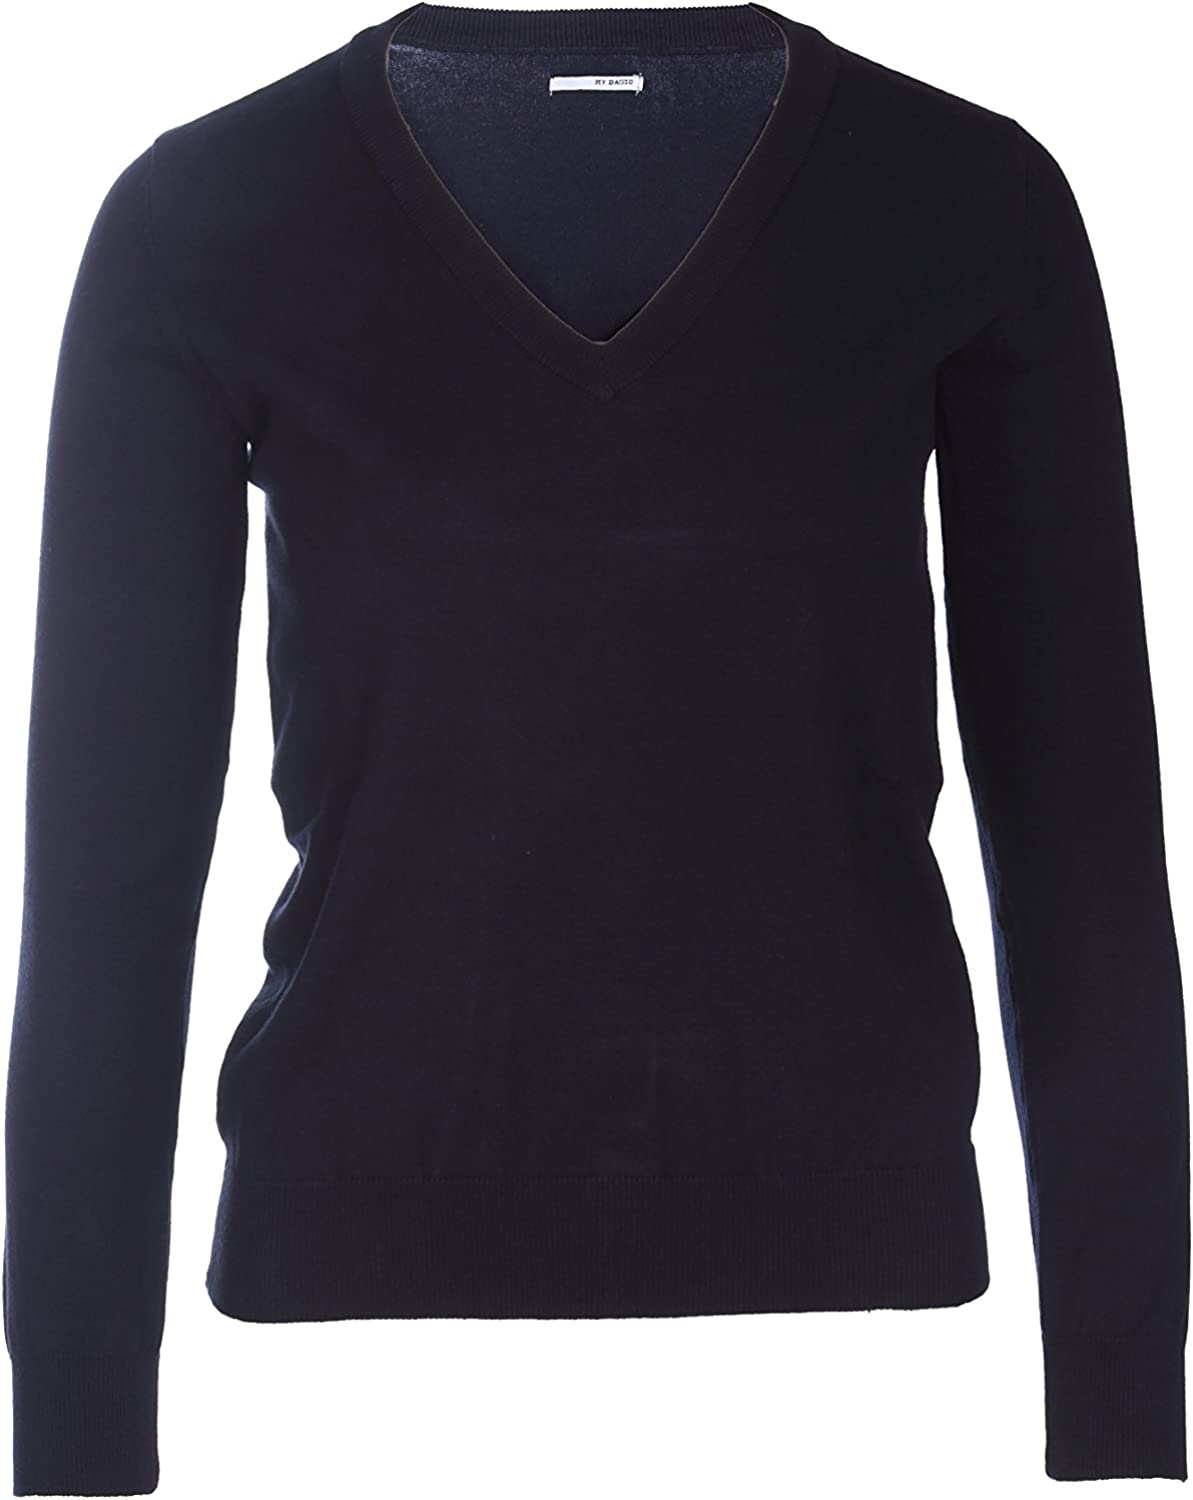 MY BASIC Pullover Cotone Stretch Donna